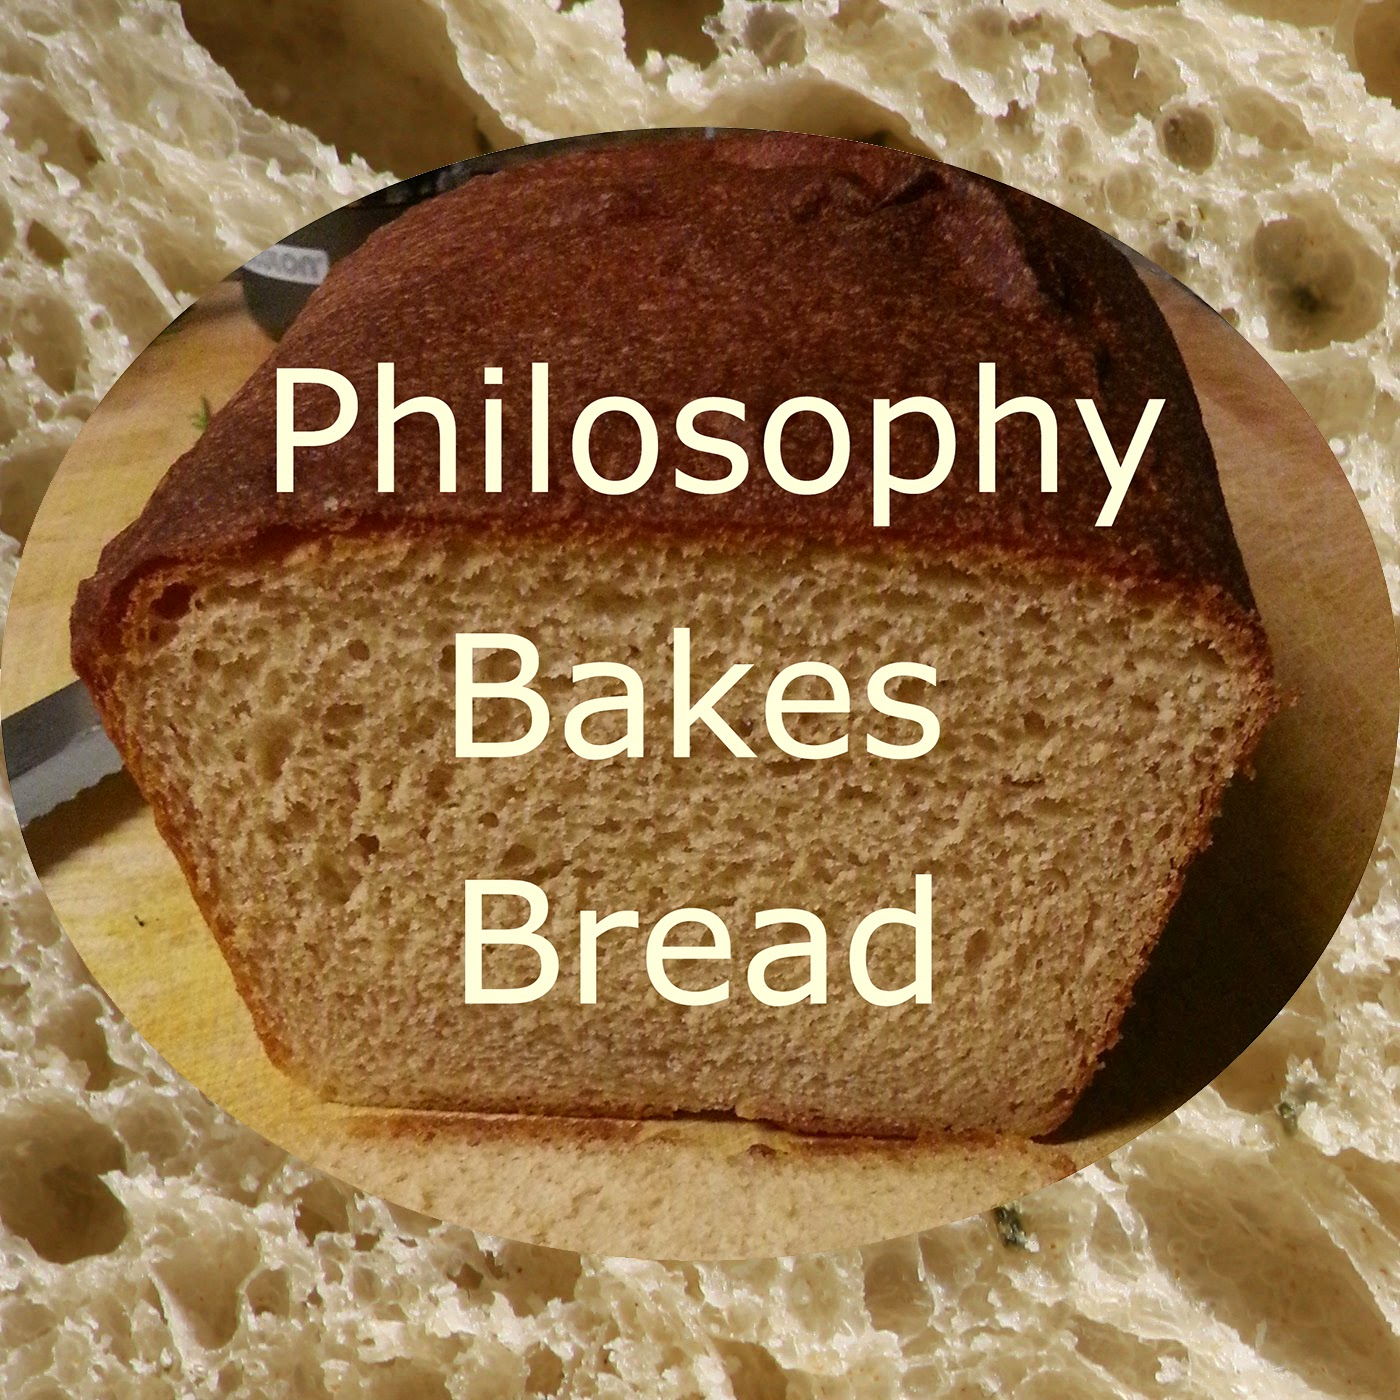 Initial logo for the Philosophy Bakes Bread podcast - a loaf of bread.